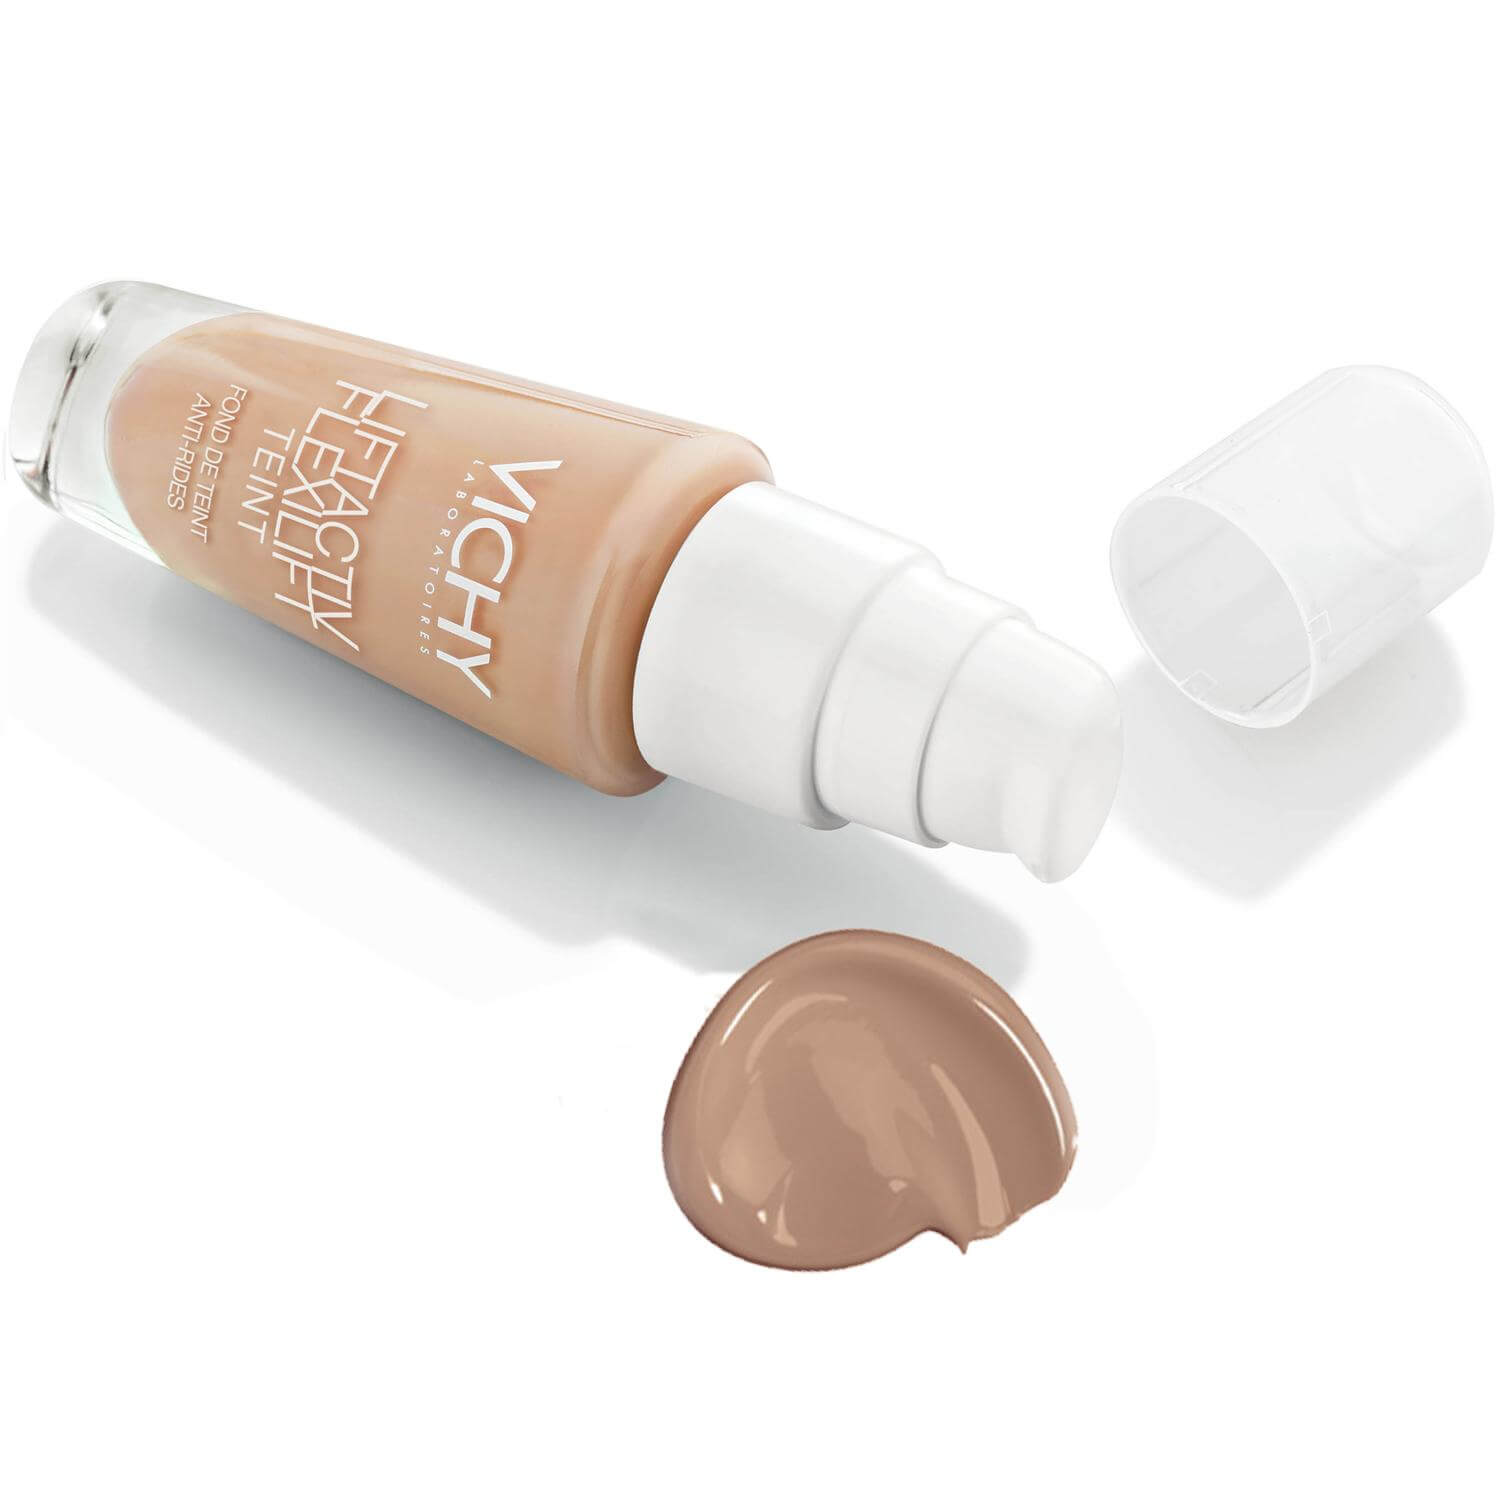 Vichy Liftactiv Flexilift Teint Make-up για Άμεσο Αποτέλεσμα Lifting & Λάμψης 30ml – 35 sand